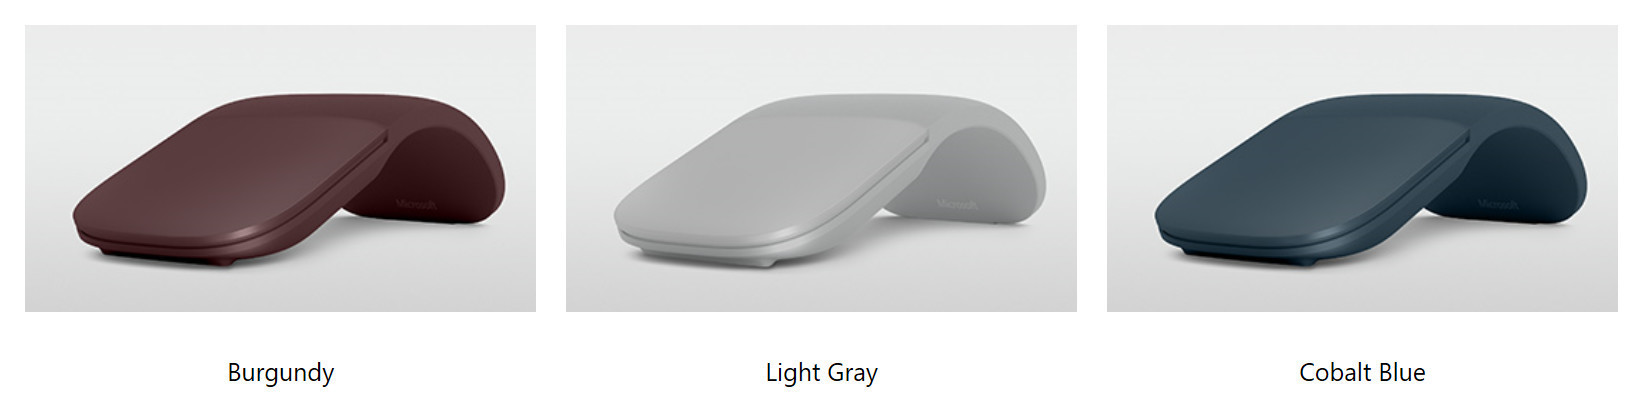 New Surface Arc Touch Mouse